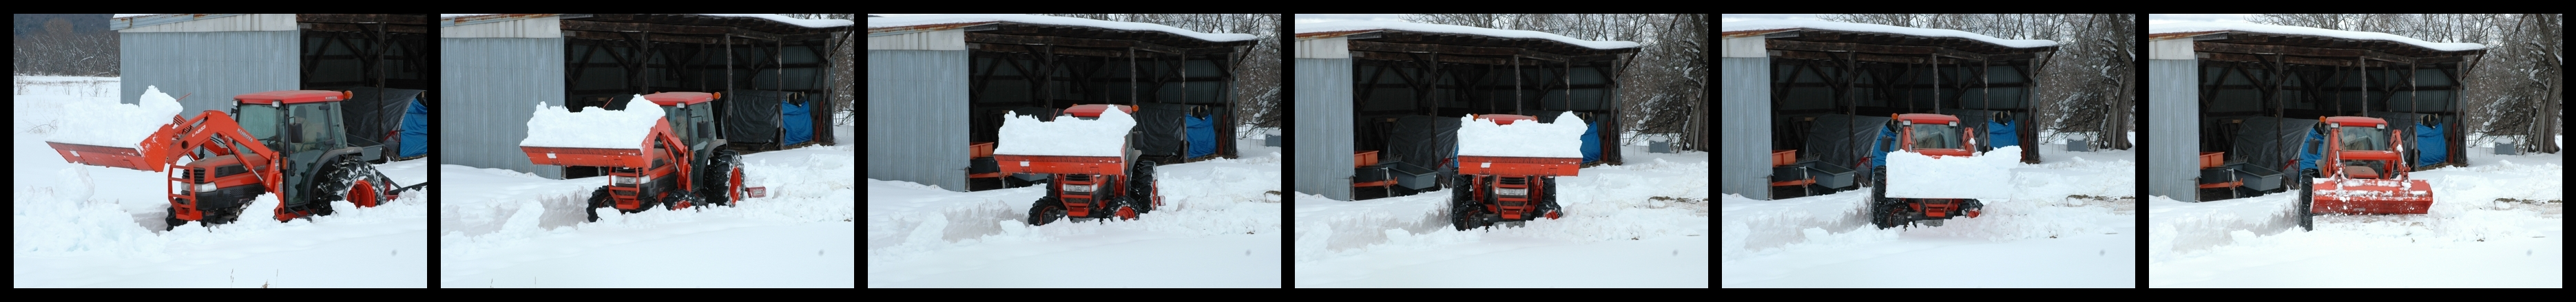 Snow Digging Action Sequence